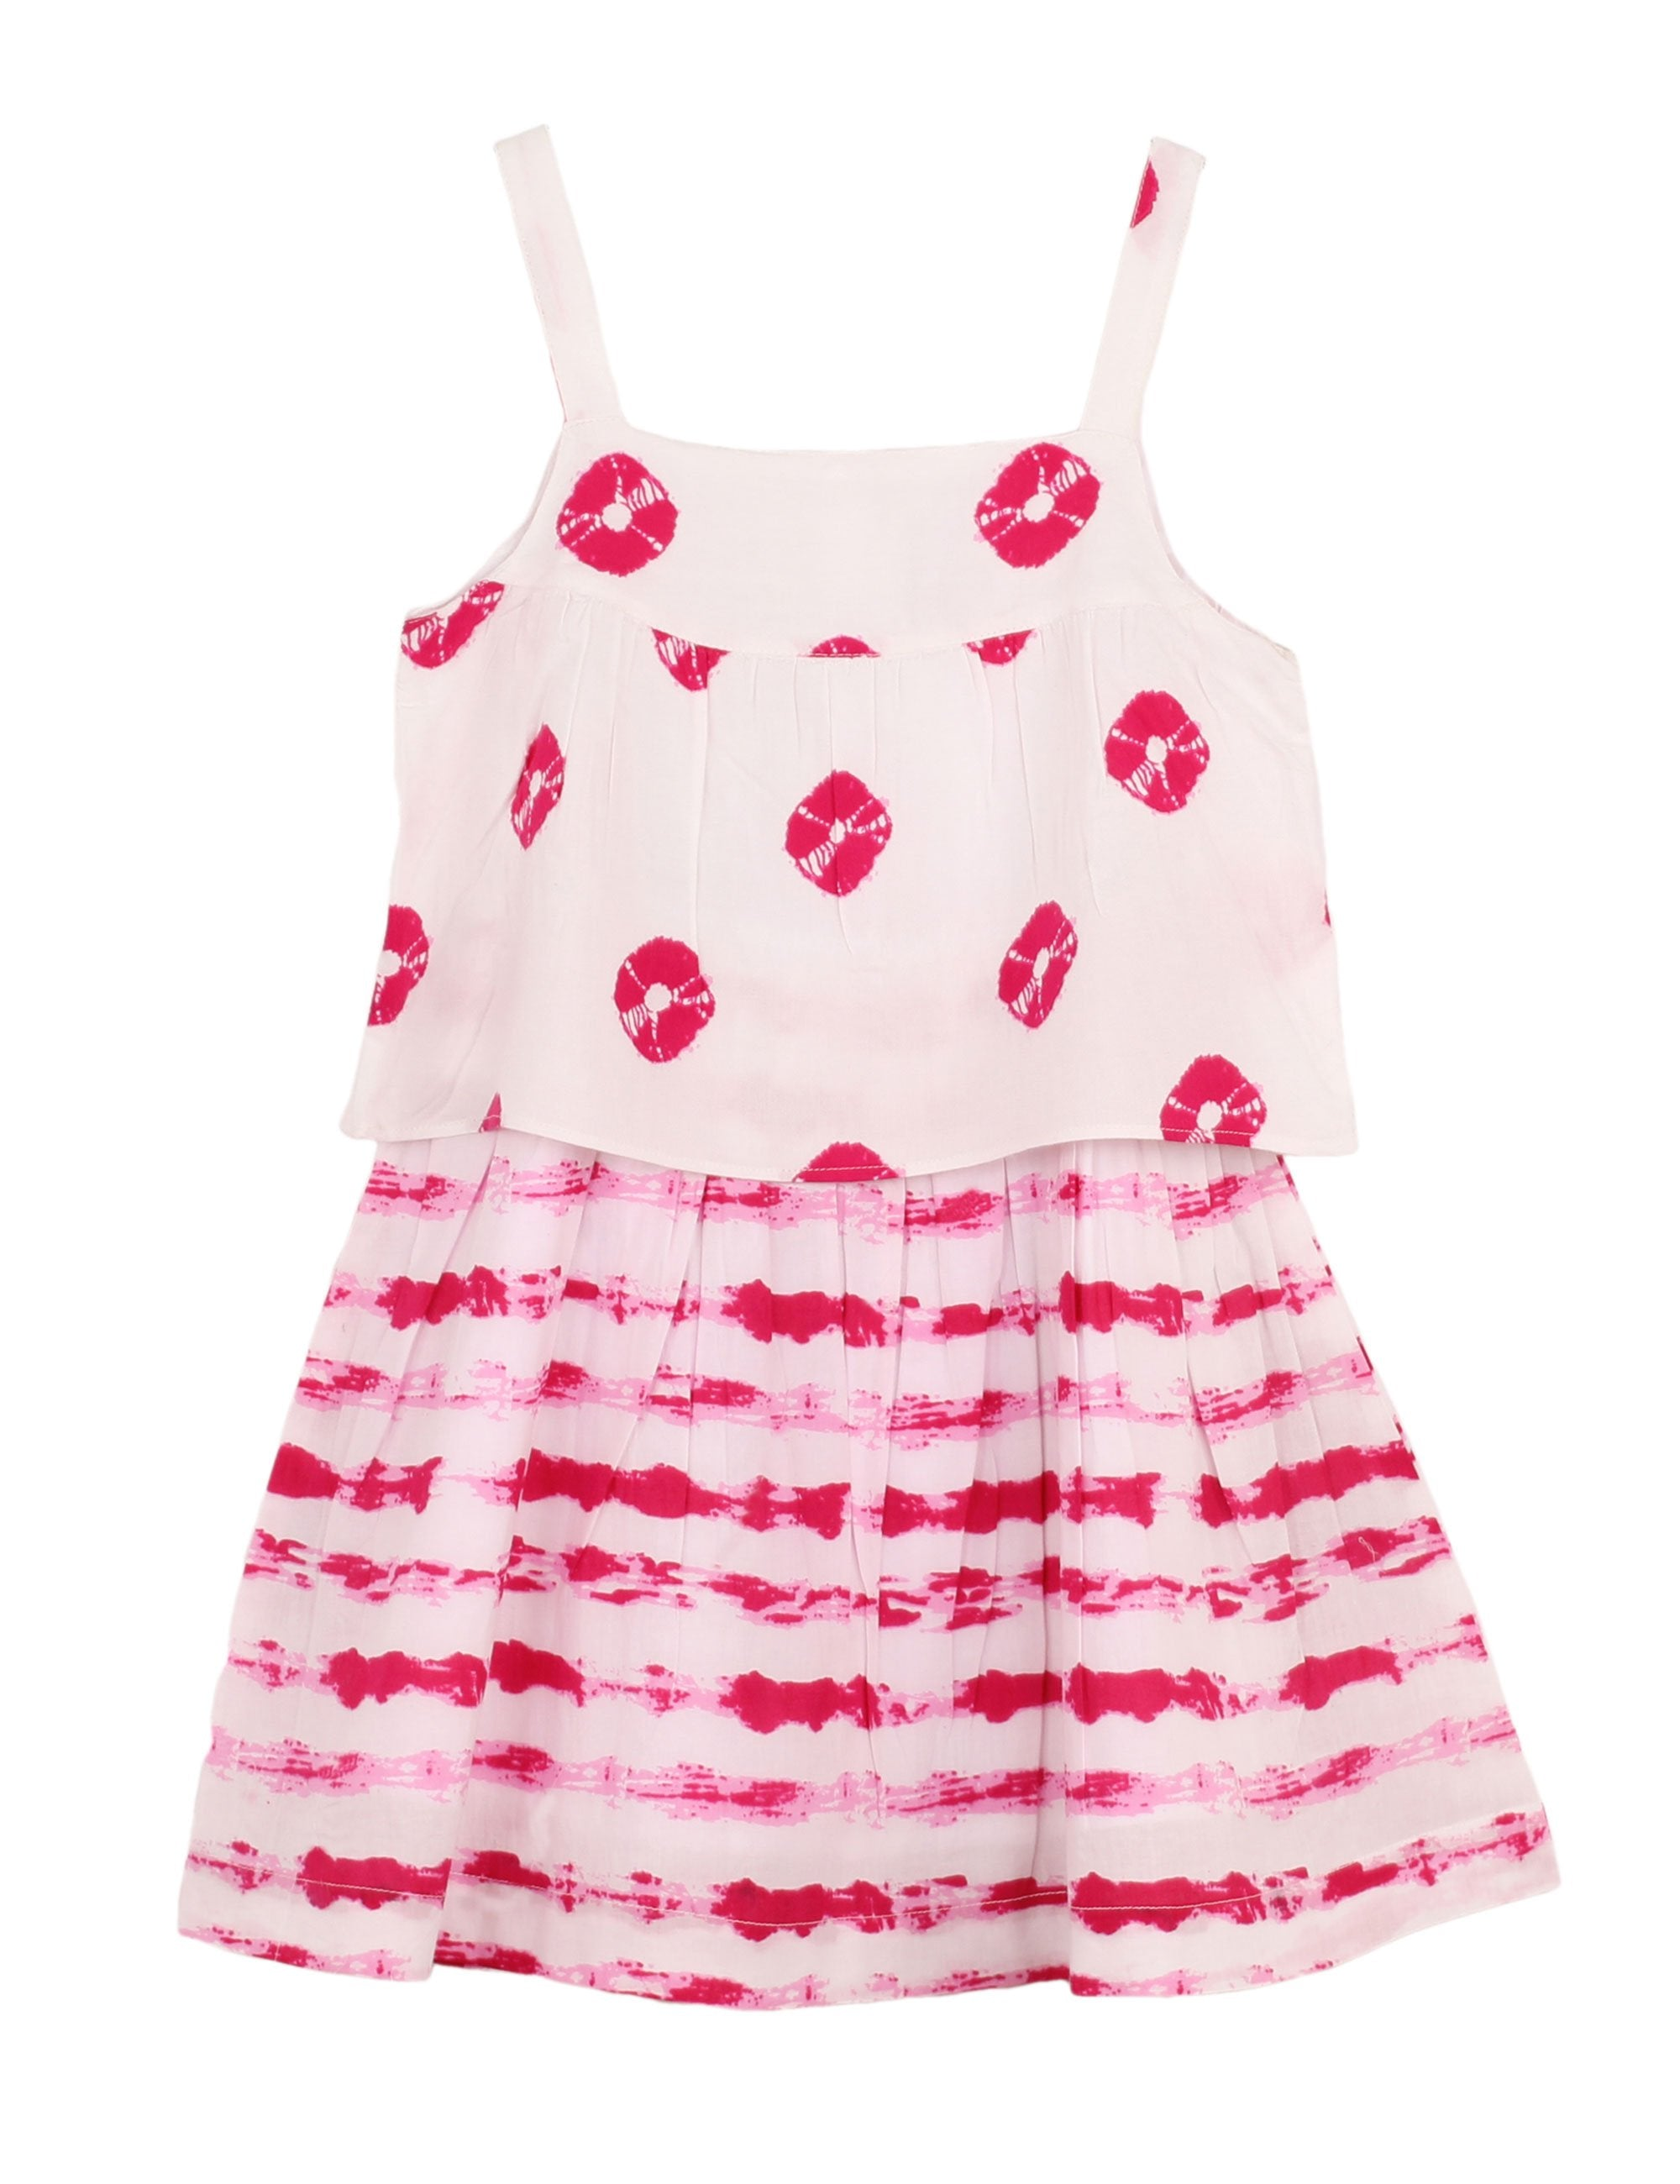 Layered Printed Tie Dye Dress in Pink and Red Colour for Girls